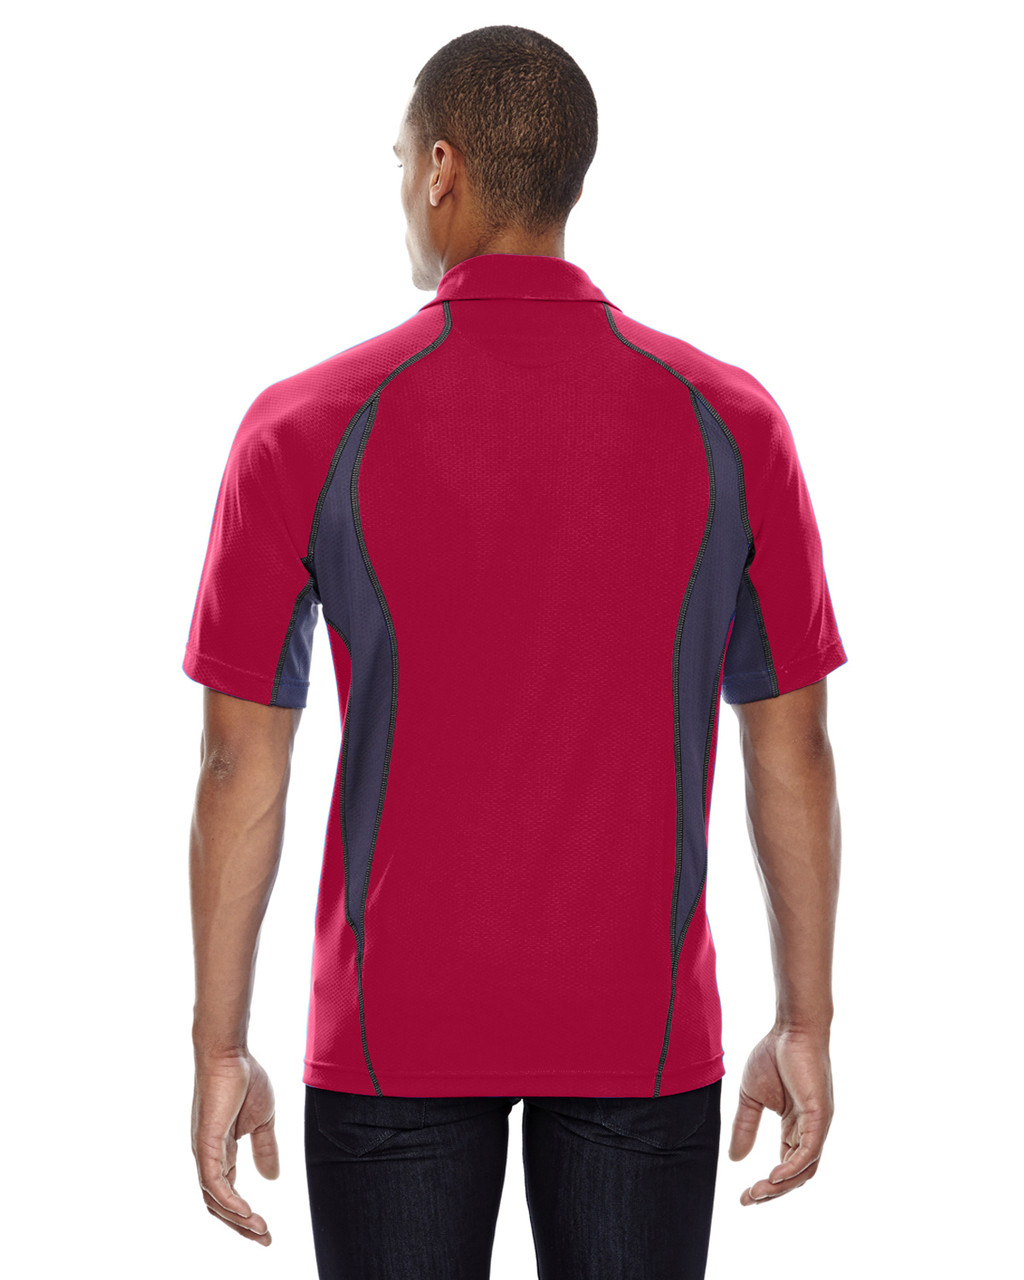 Olympic Red - Back, 88657 North End Sport Red Serac UTK Performance Zippered Polo Shirt